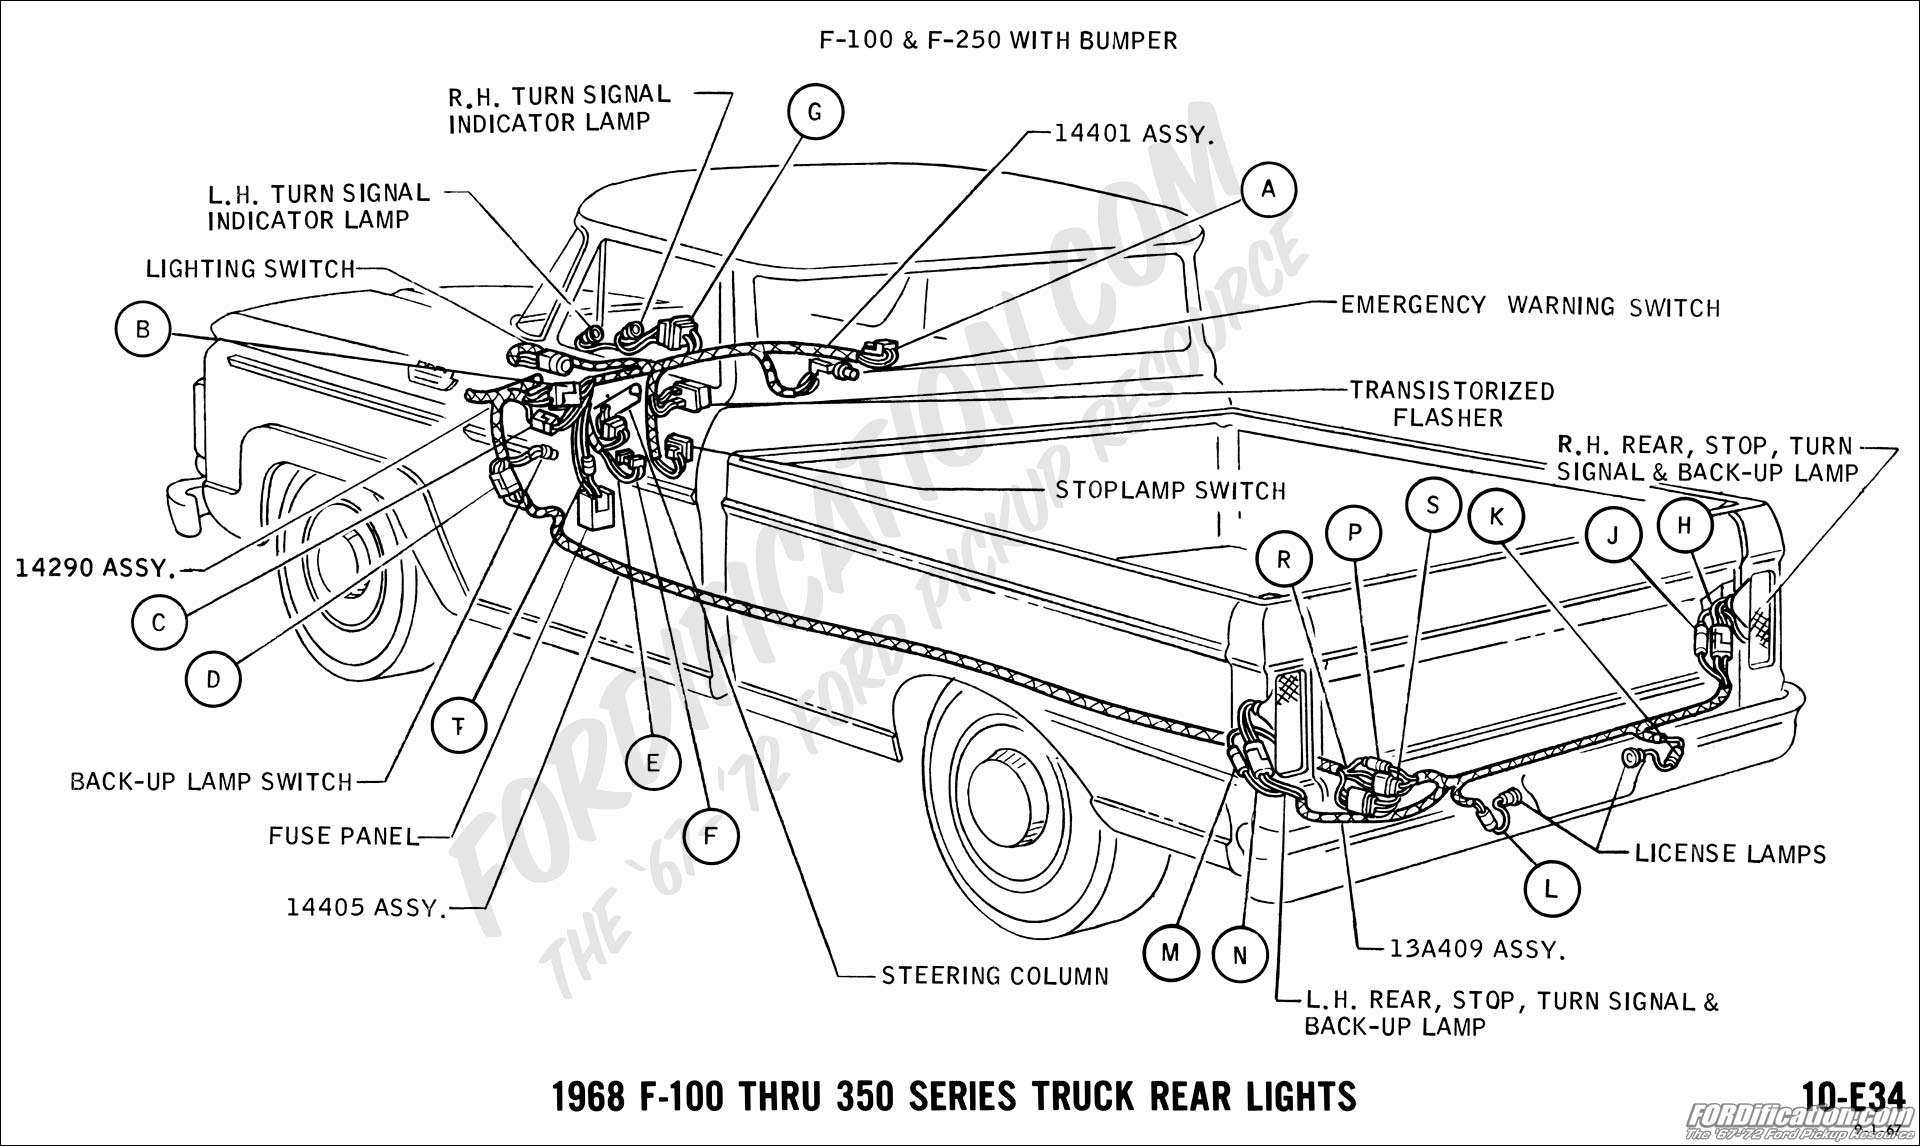 Ford Truck Technical Drawings And Schematics Section H Wiring 1962 Chevy C10 Steering Column Diagram 1968 F 100 Thru 350 Rear Lights